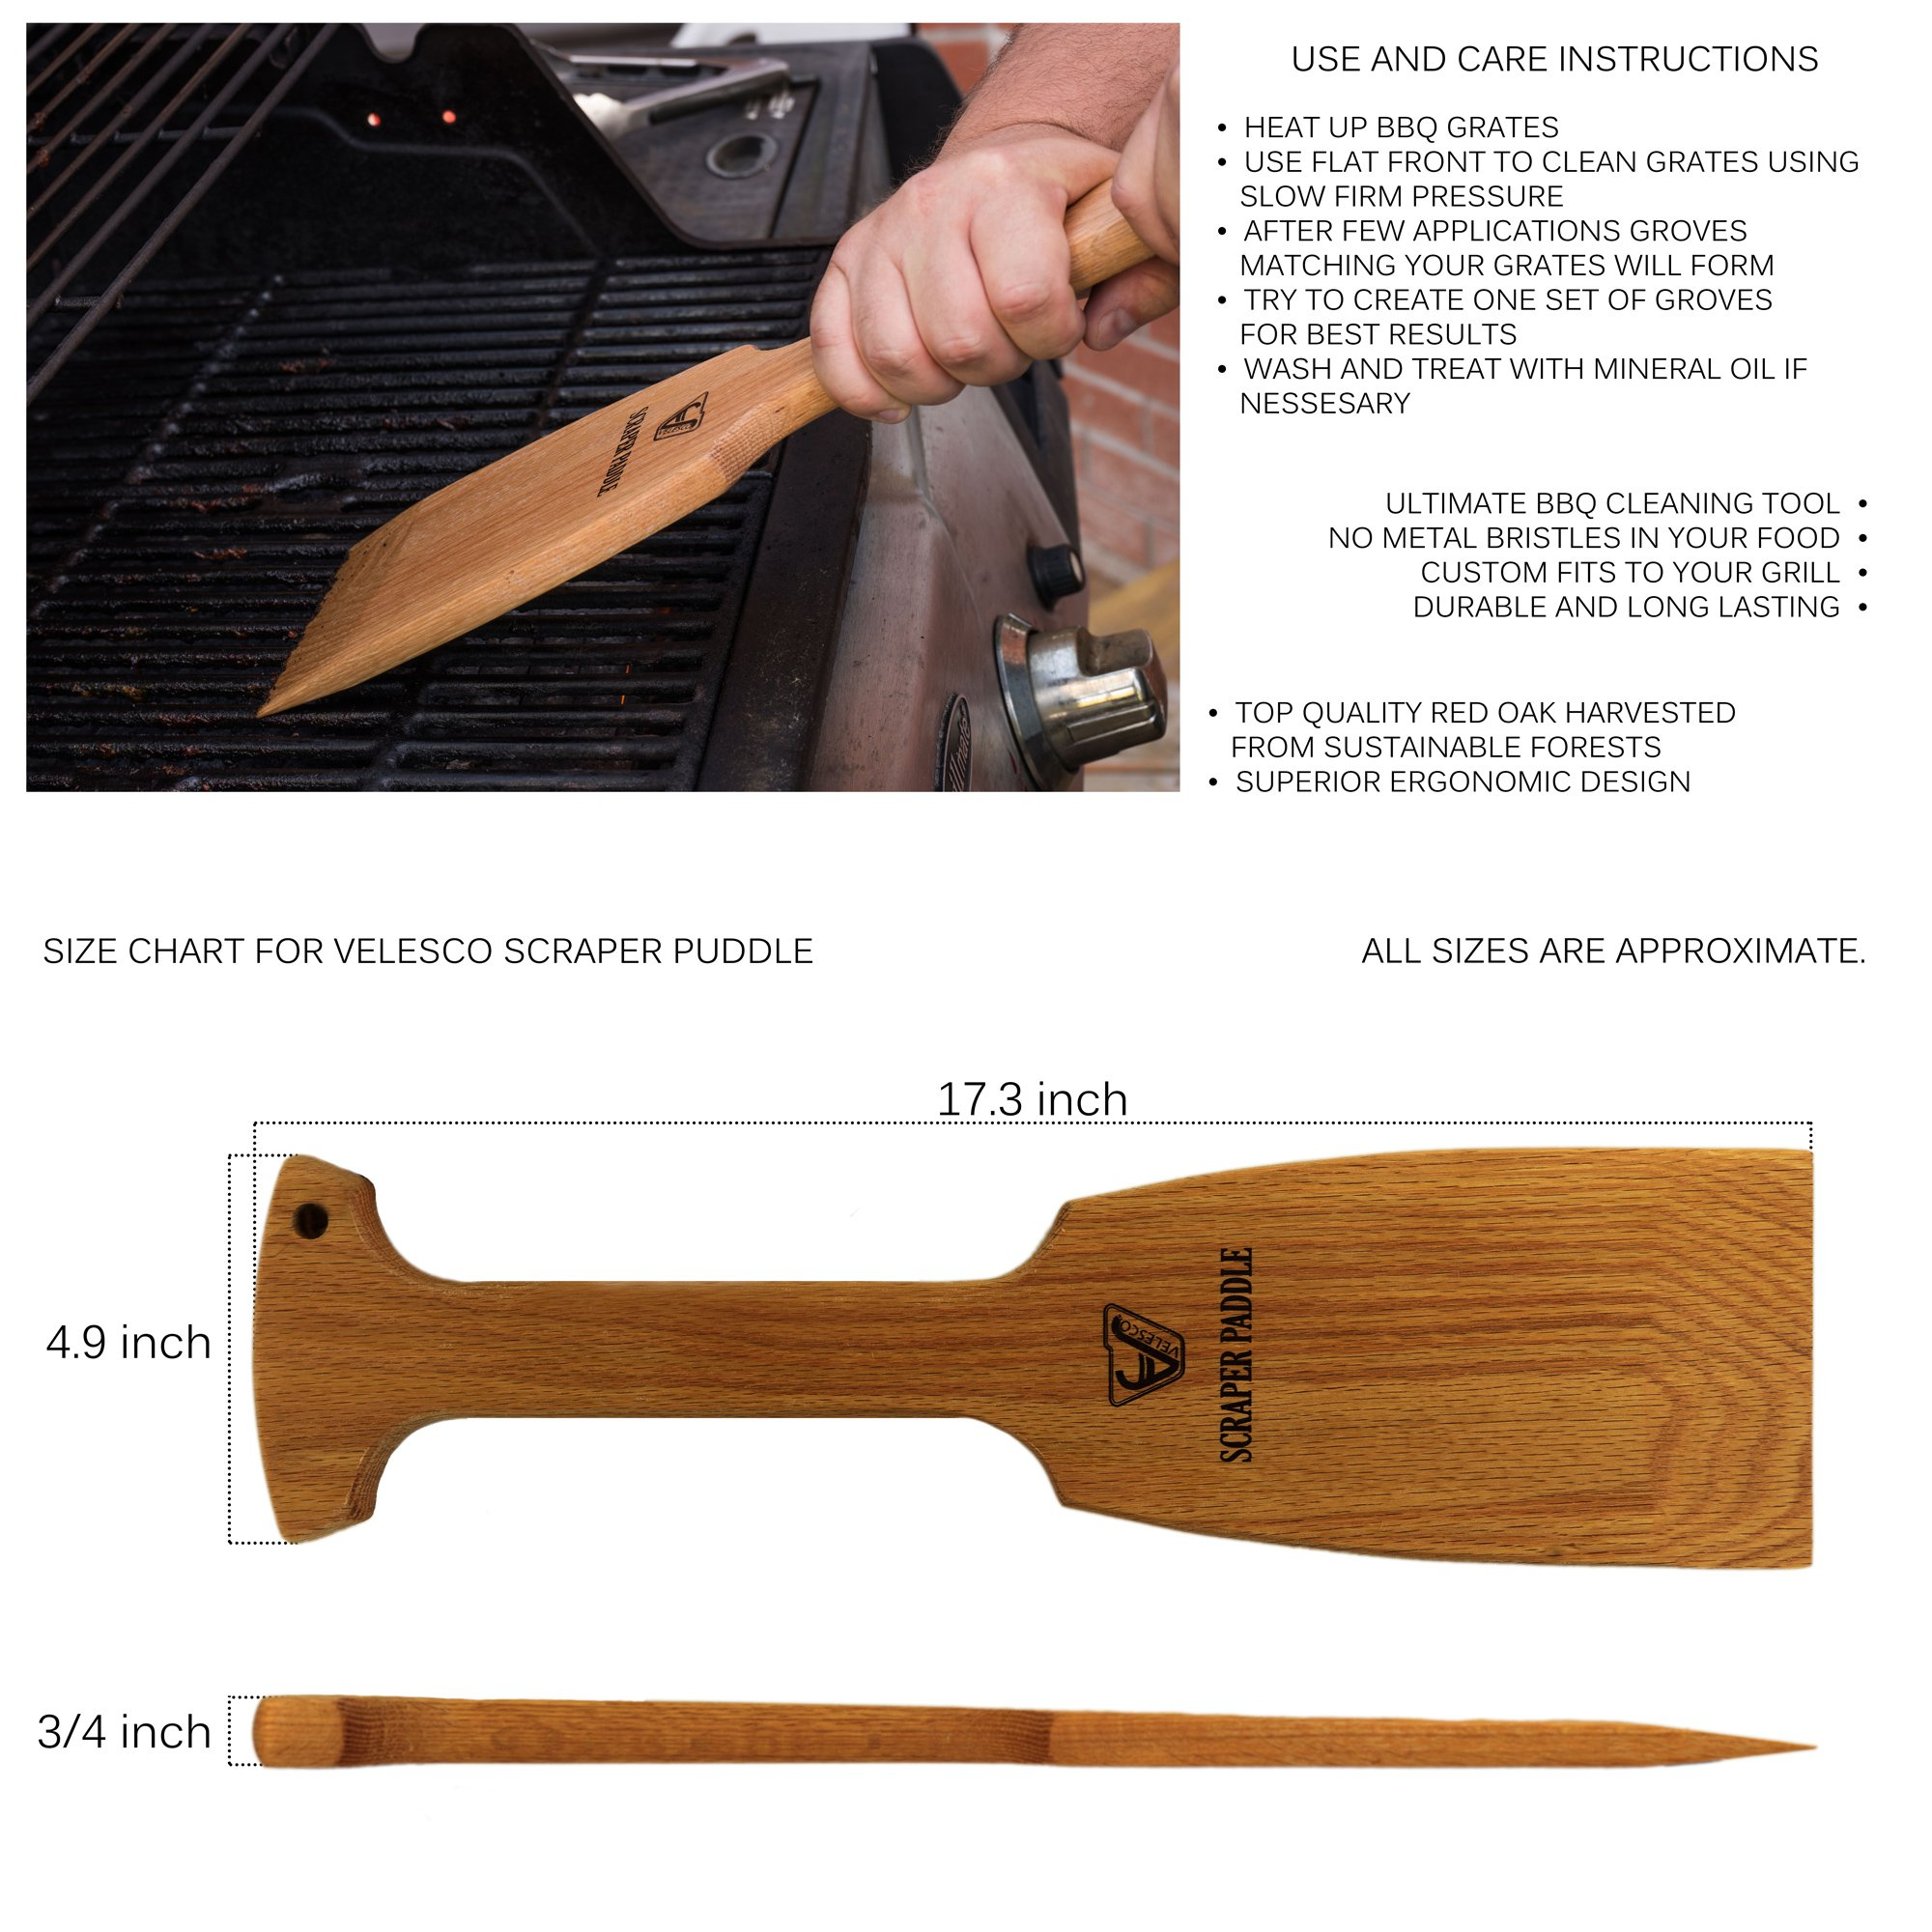 Velesco BBQ Wooden Grill Scraper Cleaner, American Red Oak Wood - Charcoal and Gas - Cleans top and between barbecue grates. Oil & clean grate. Sustainable and safe replacement for wire bristle brush by Velesco (Image #3)